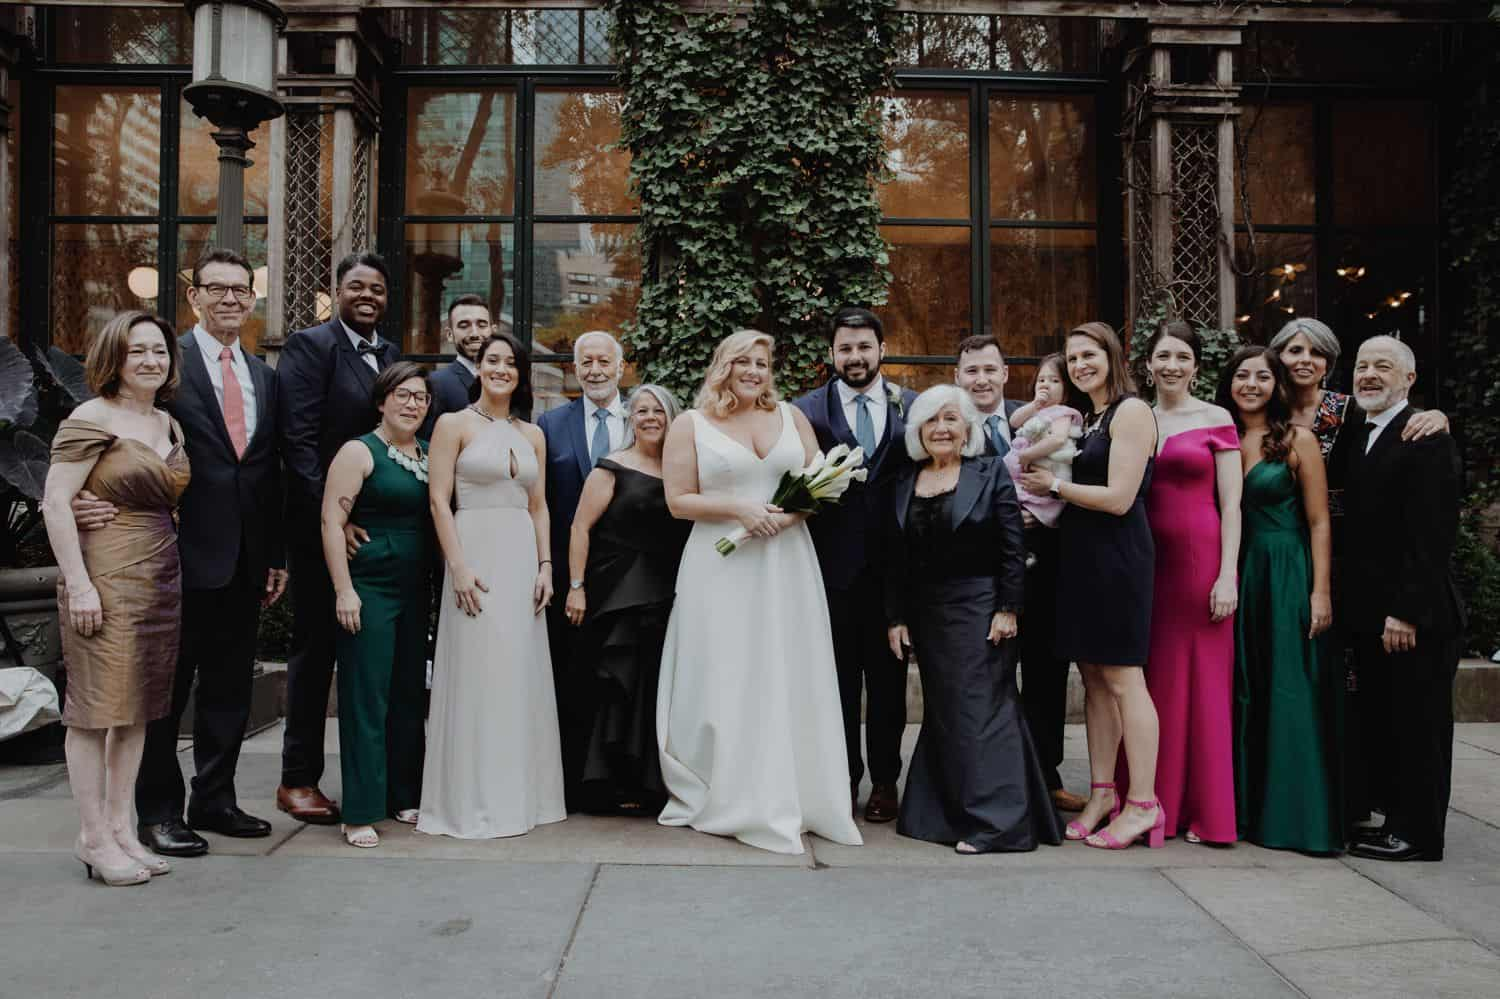 Large family portrait at a wedding in a courtyard